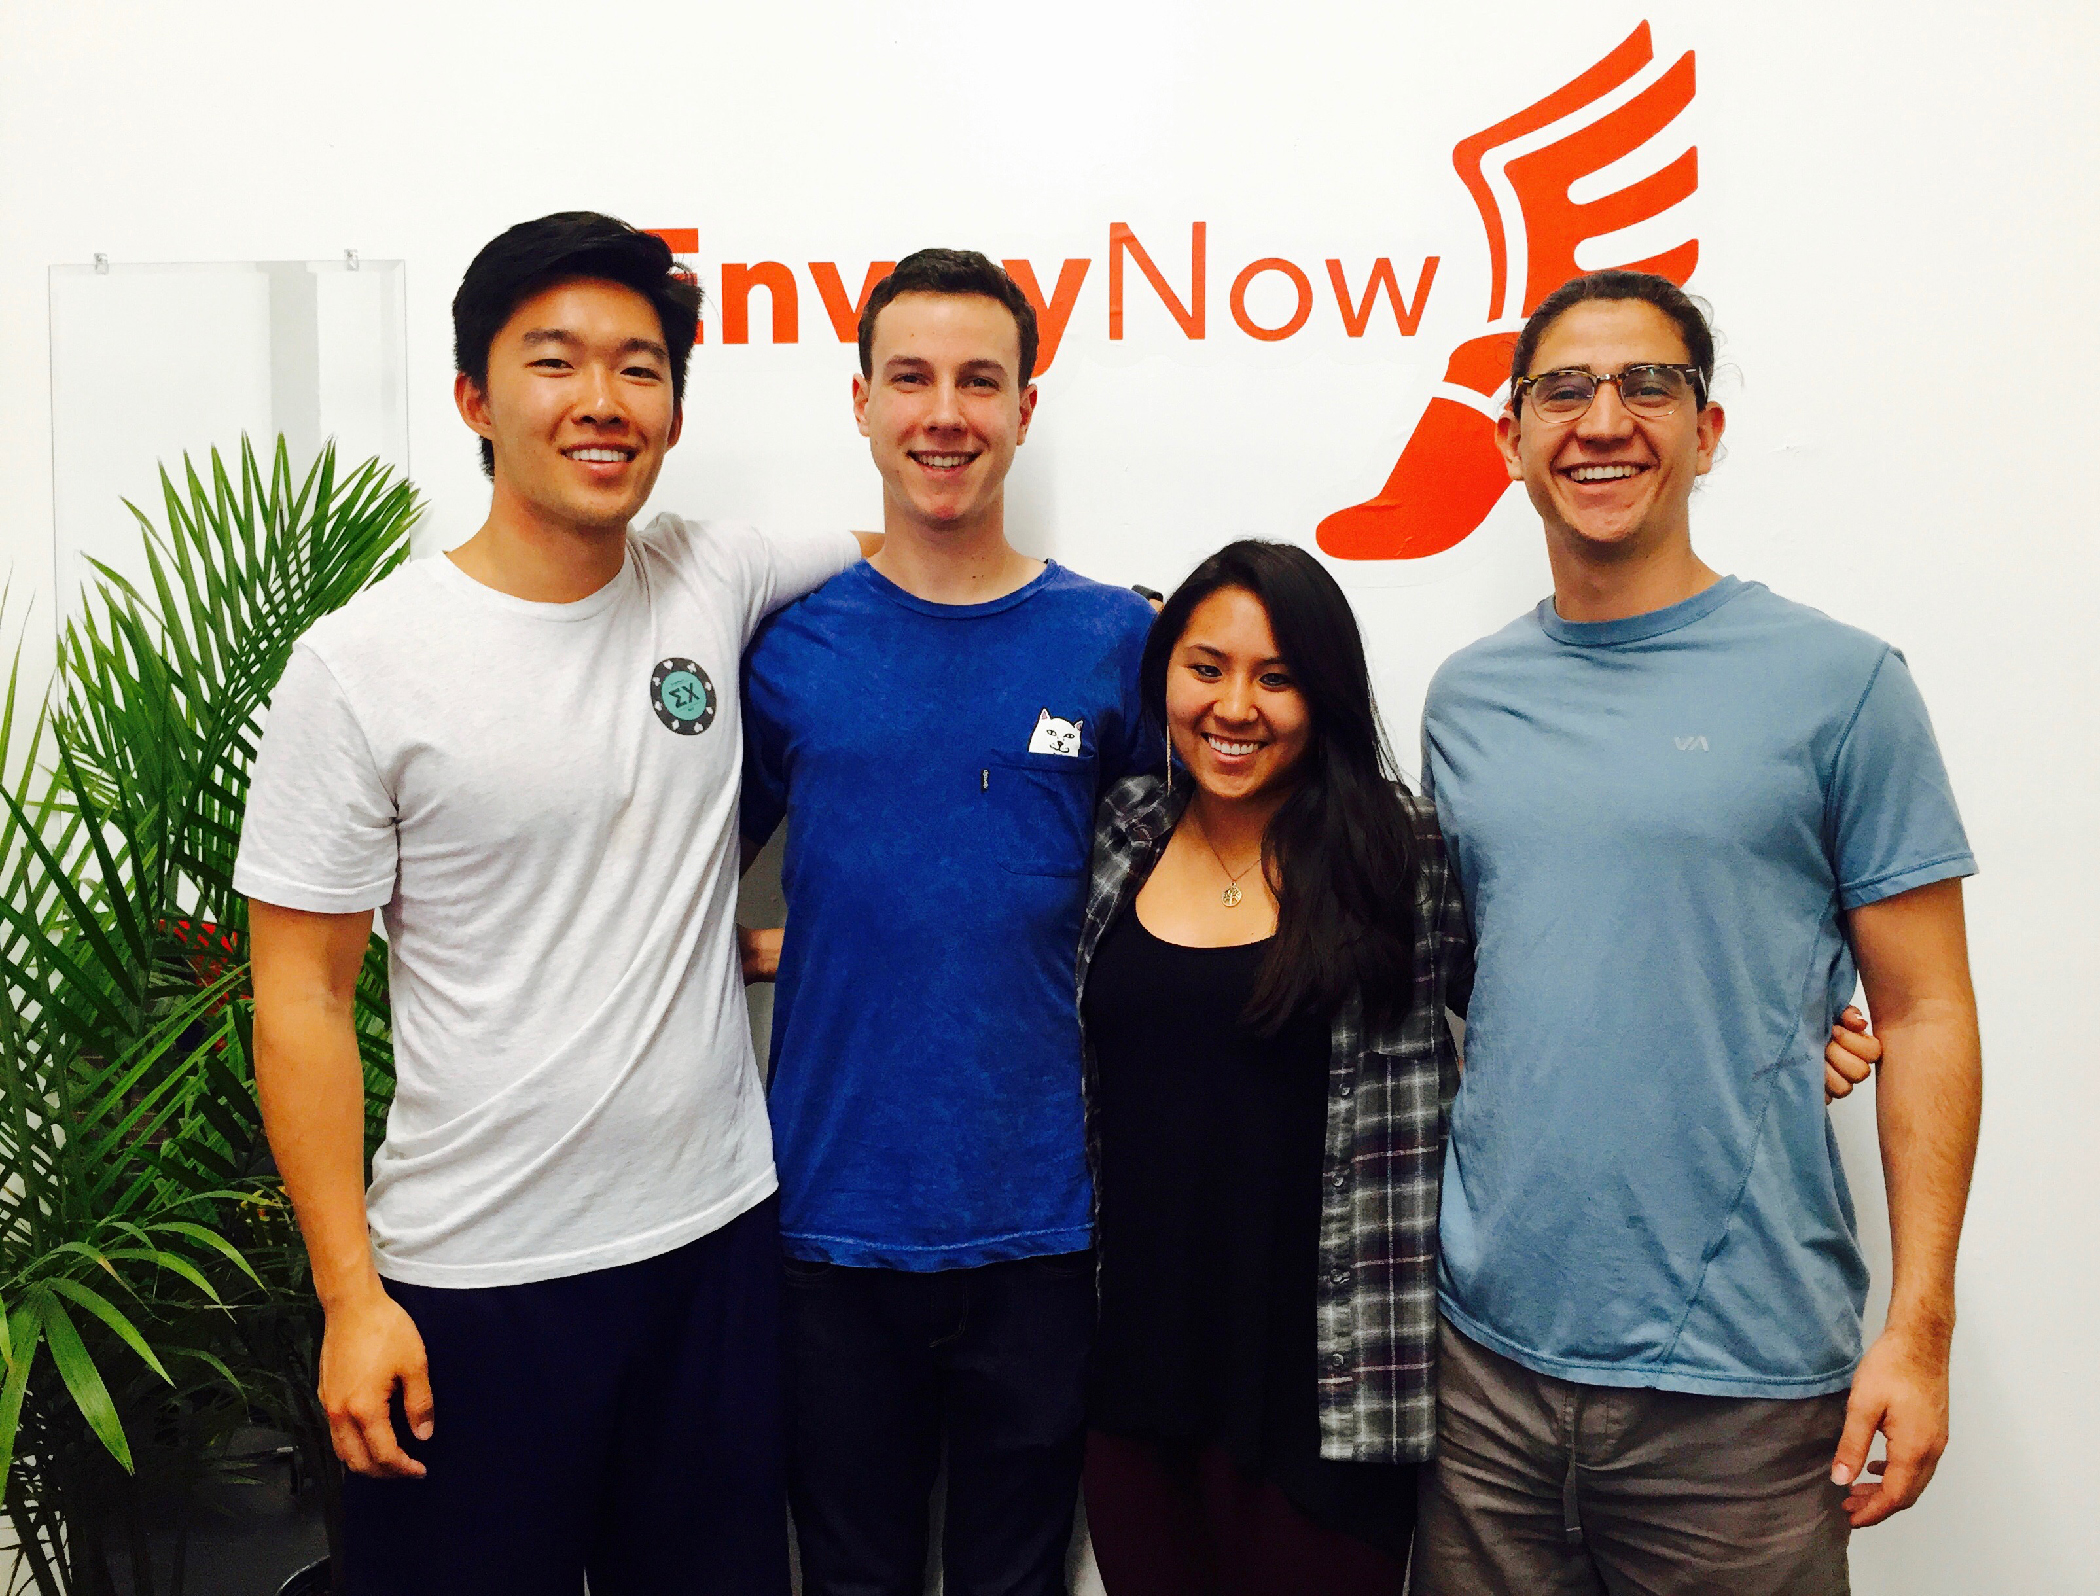 From left to right: Anthony Zhang (CEO), Parker Seagren (CTO), Kristi Hupka (EVP), Gabriel Quintela